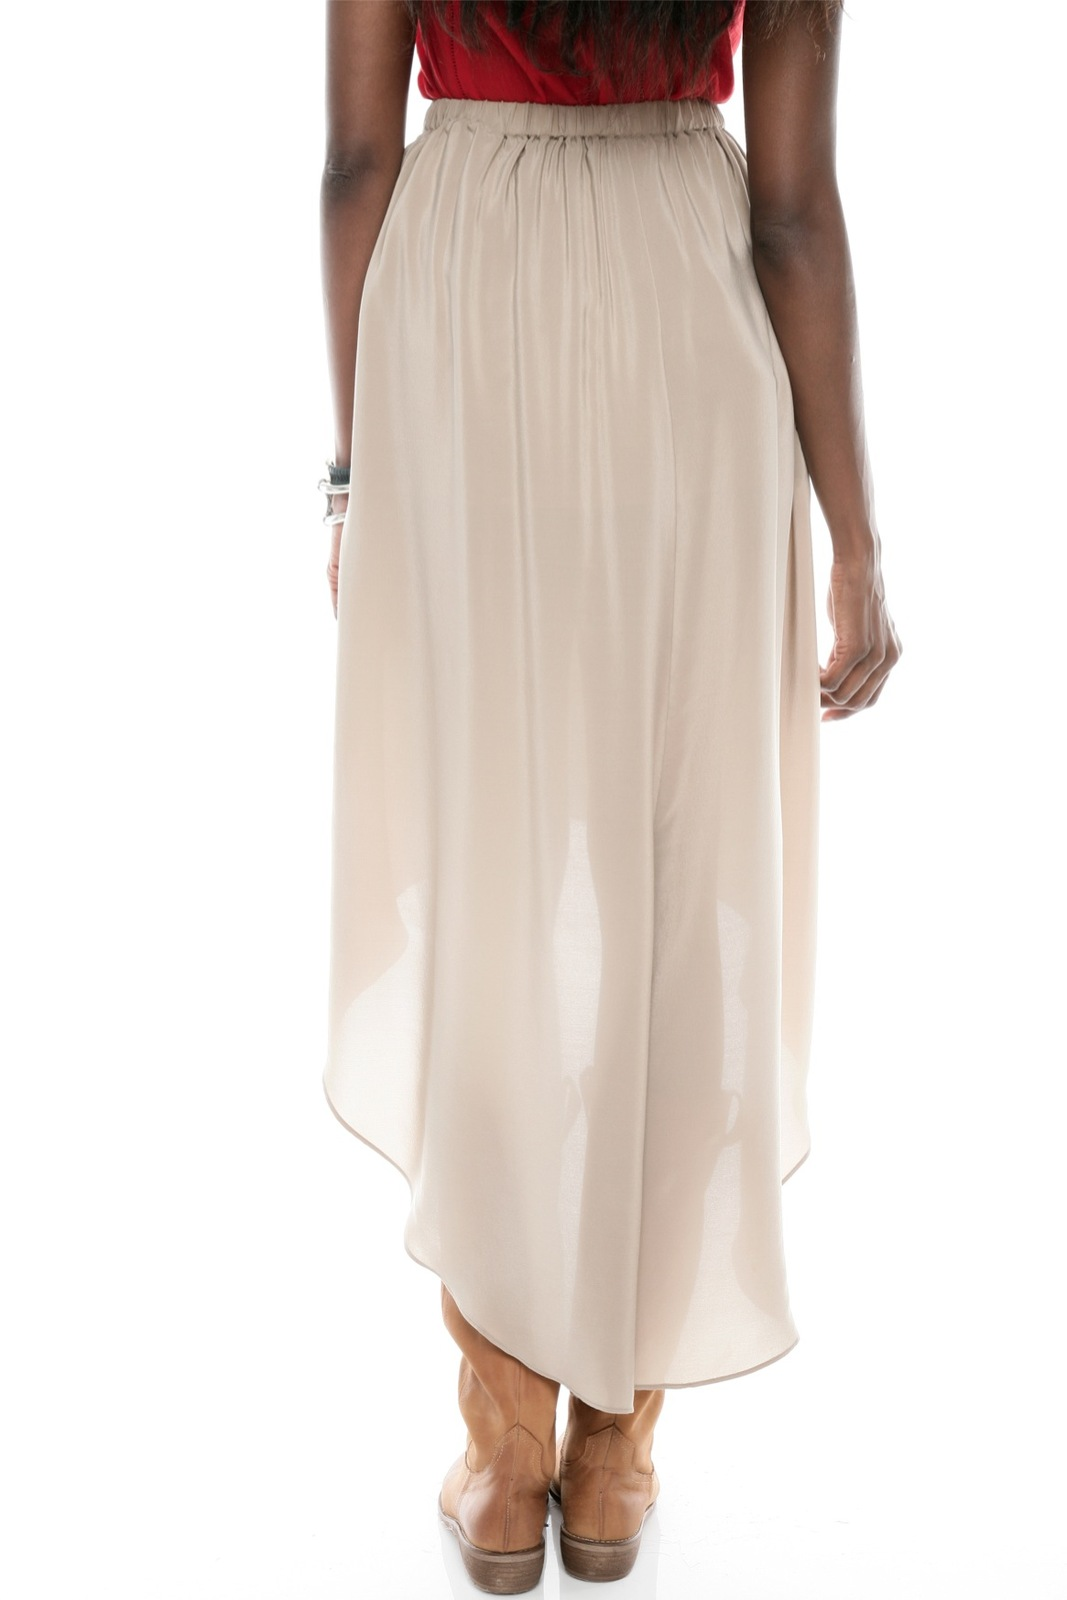 CUT25 BY YIGAL AZROUEL Hi-Low Silk Skirt - Back Cropped Image